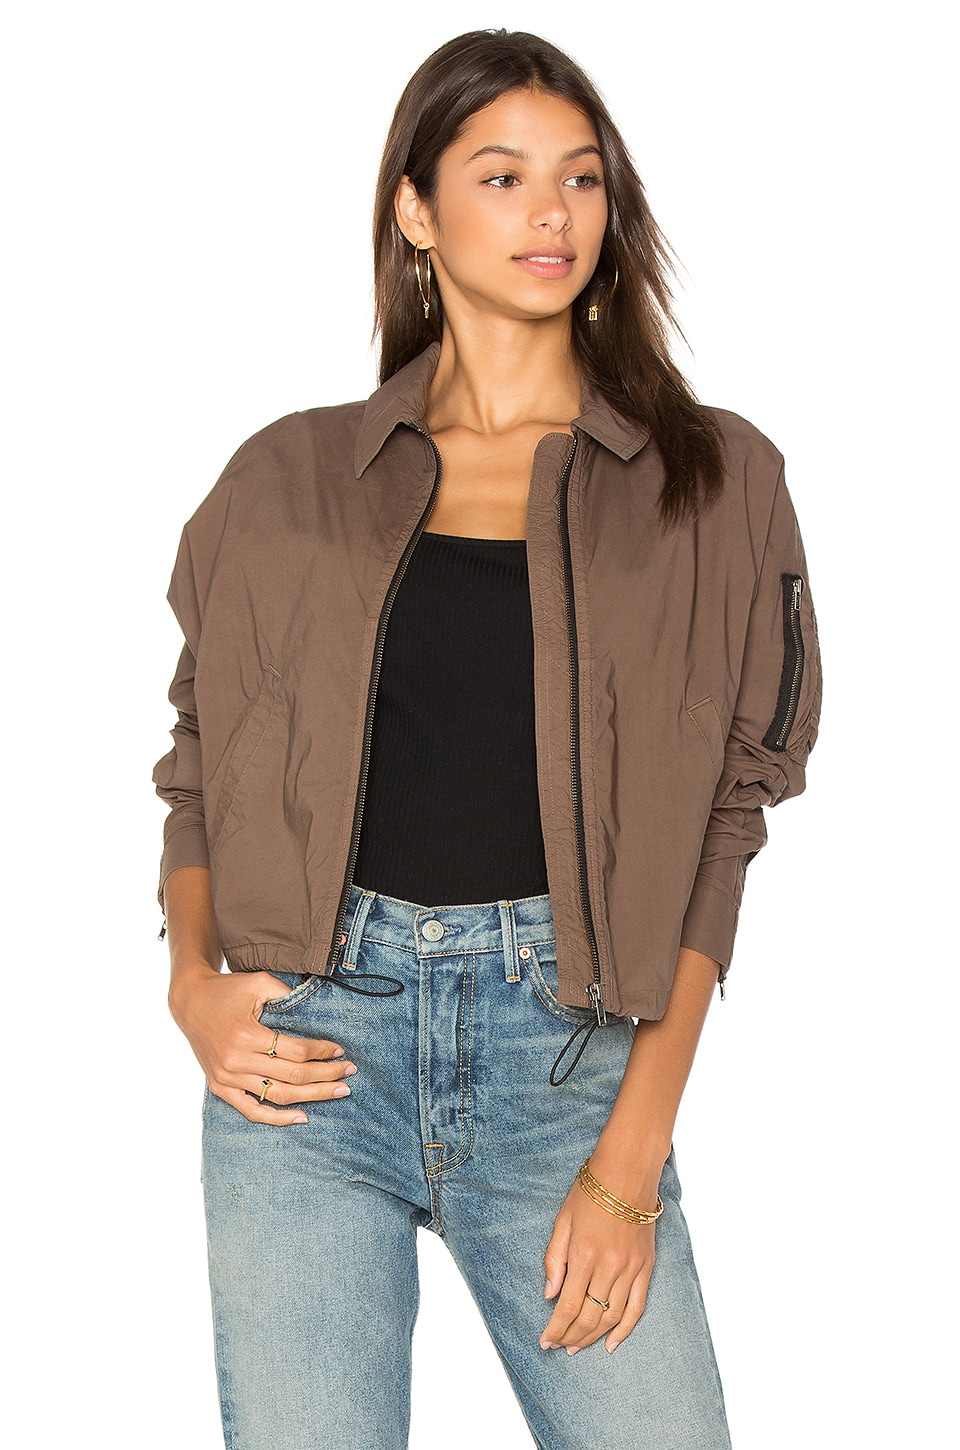 James Perse Batwing Bomber Jacket in Army Green